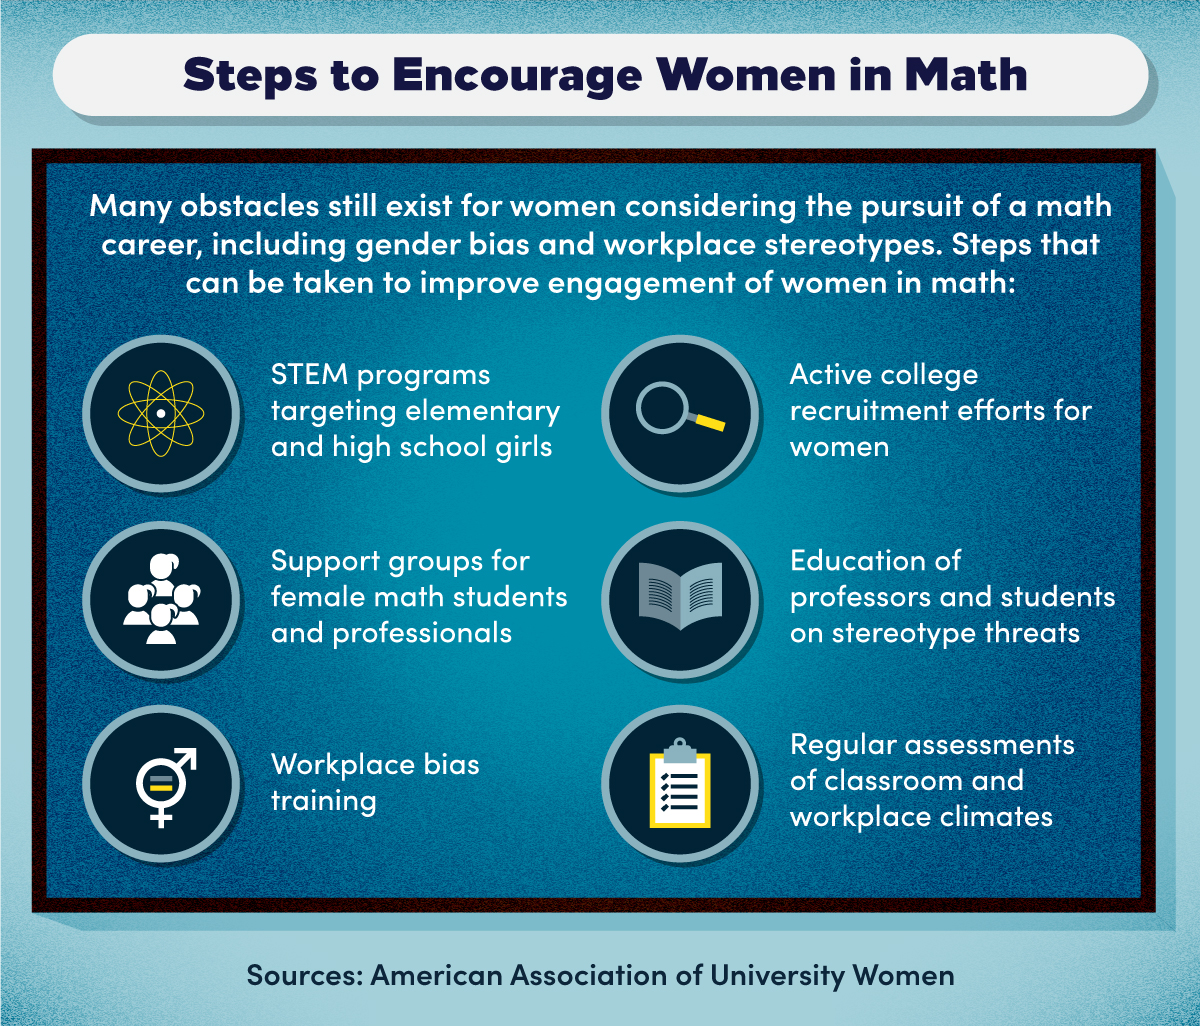 STEM programs, college recruitment efforts, support groups, and workplace bias training are positive steps for improving engagement of women in math.